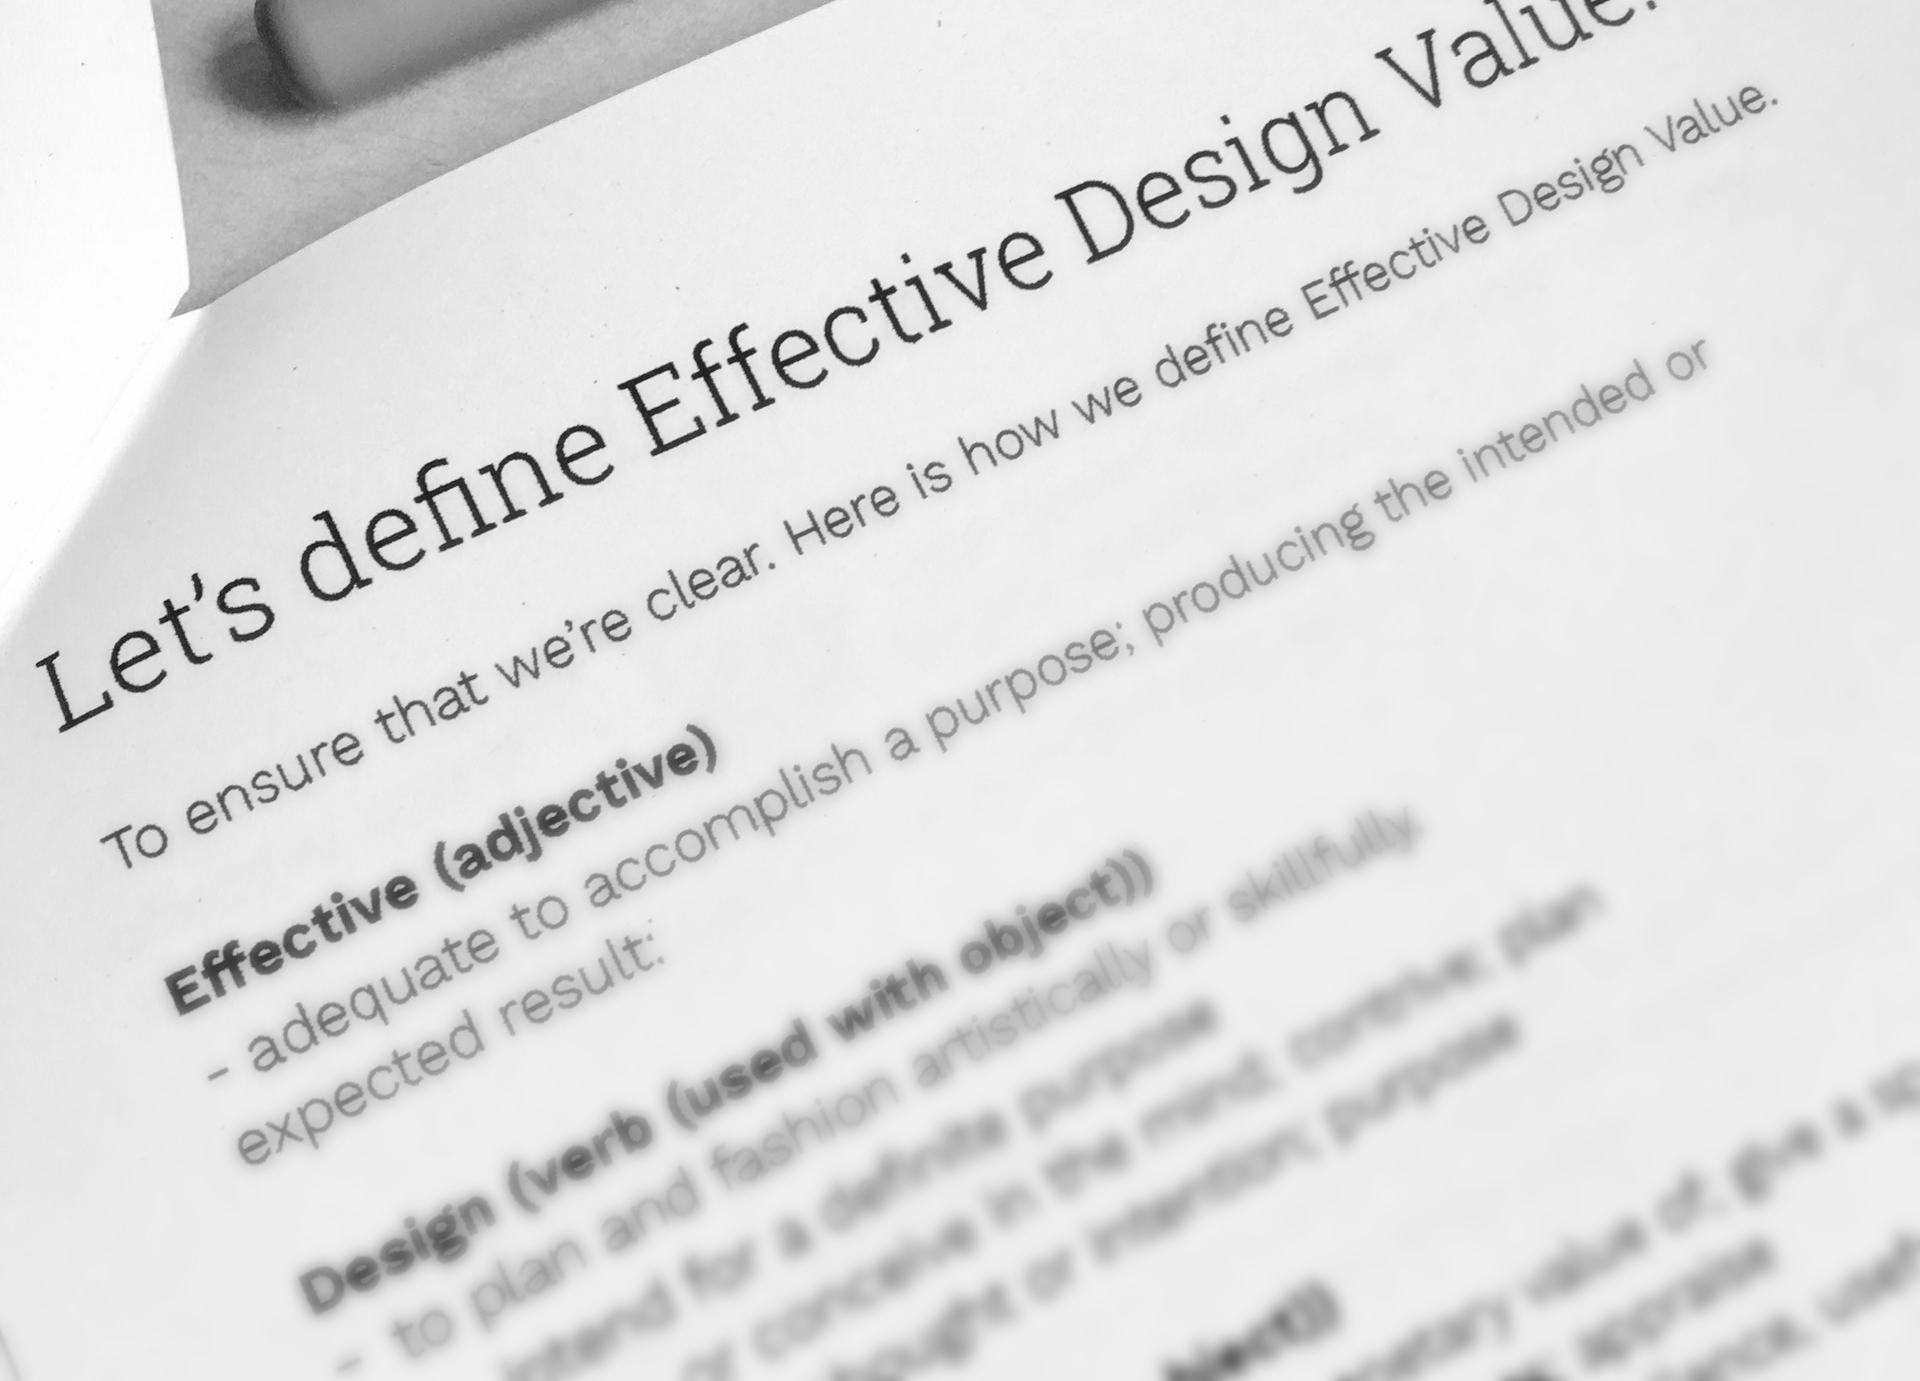 Effective Design Value